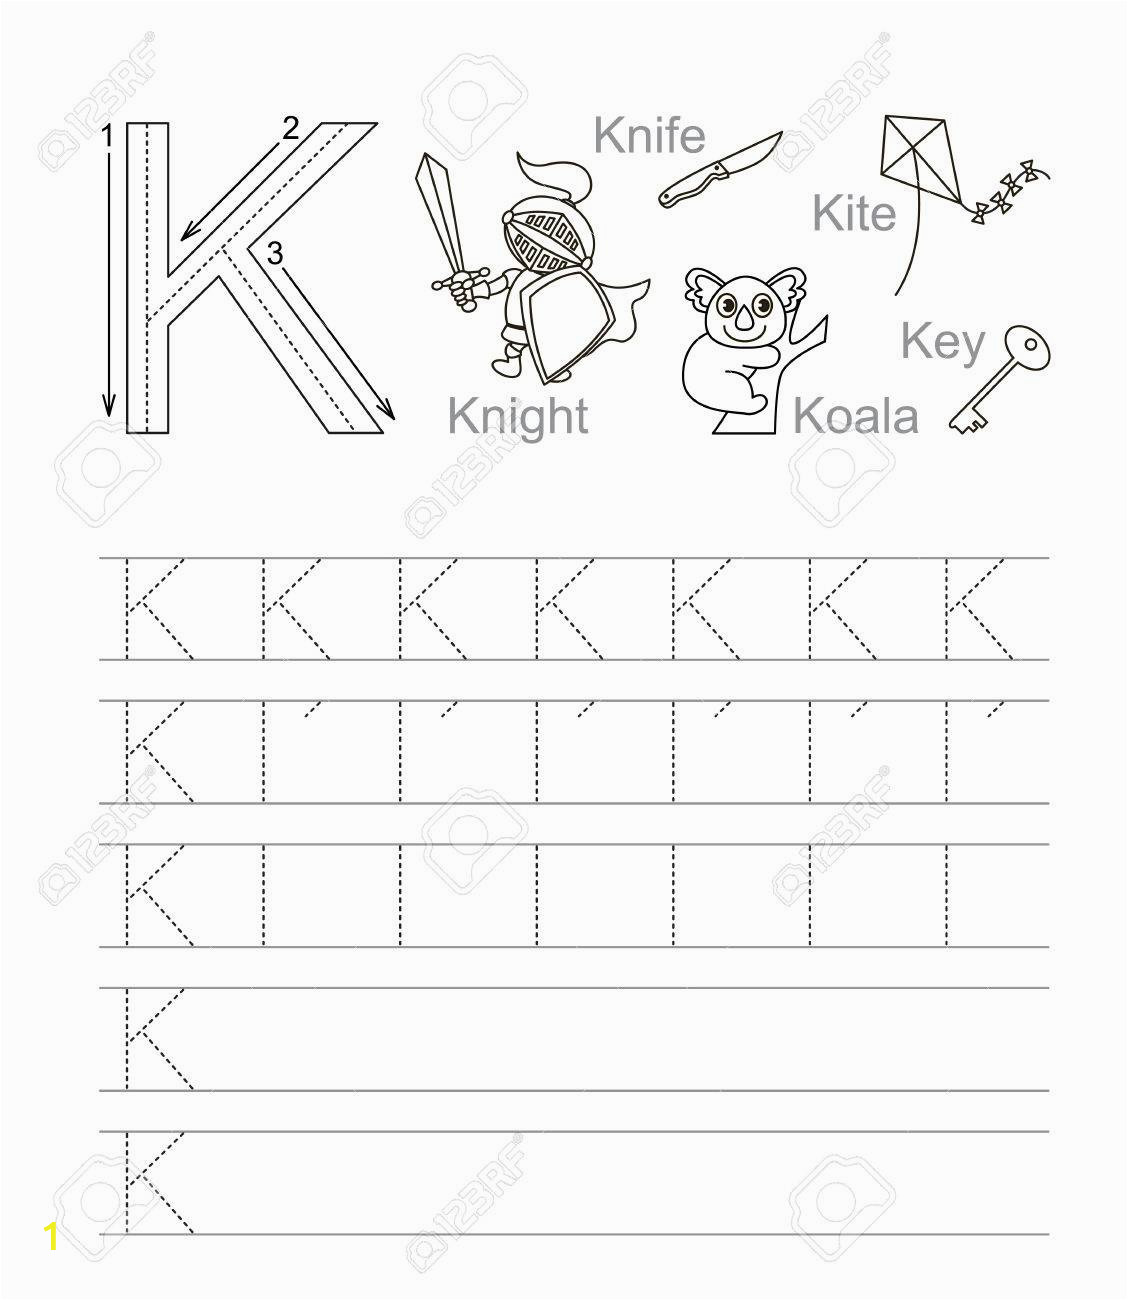 Alphabet Coloring and Tracing Worksheets Vector Exercise Illustrated Alphabet Learn Handwriting Tracing